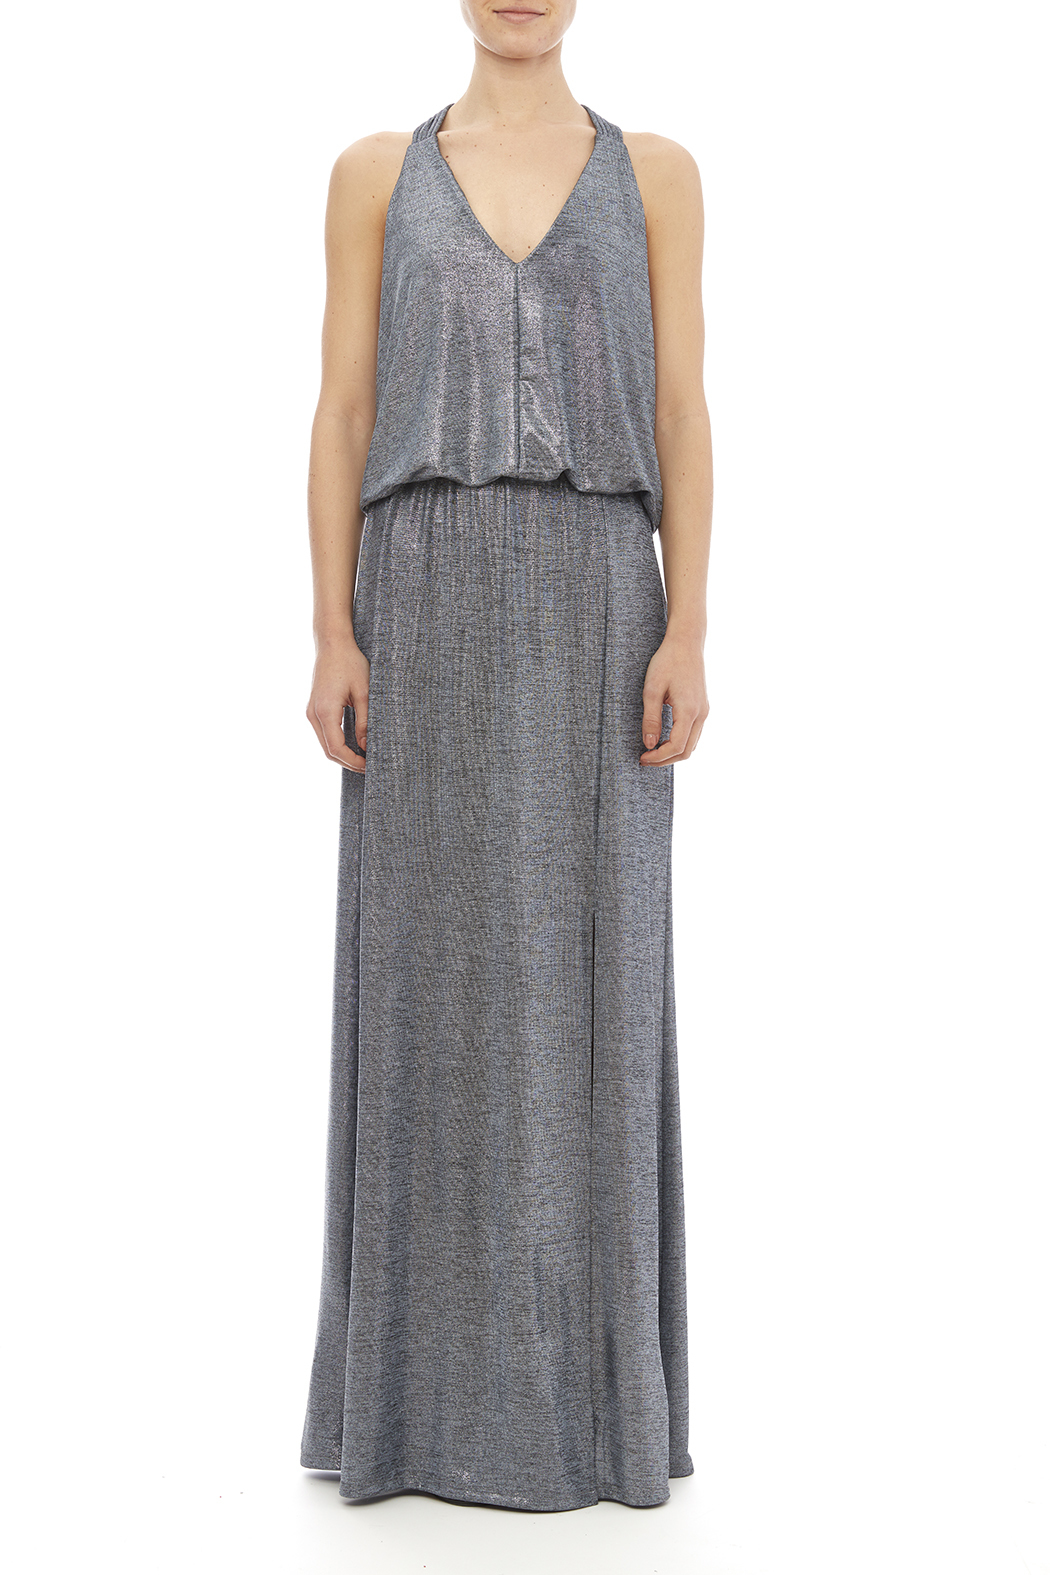 Ella Moss Sparkle Jersey Dress - Front Cropped Image